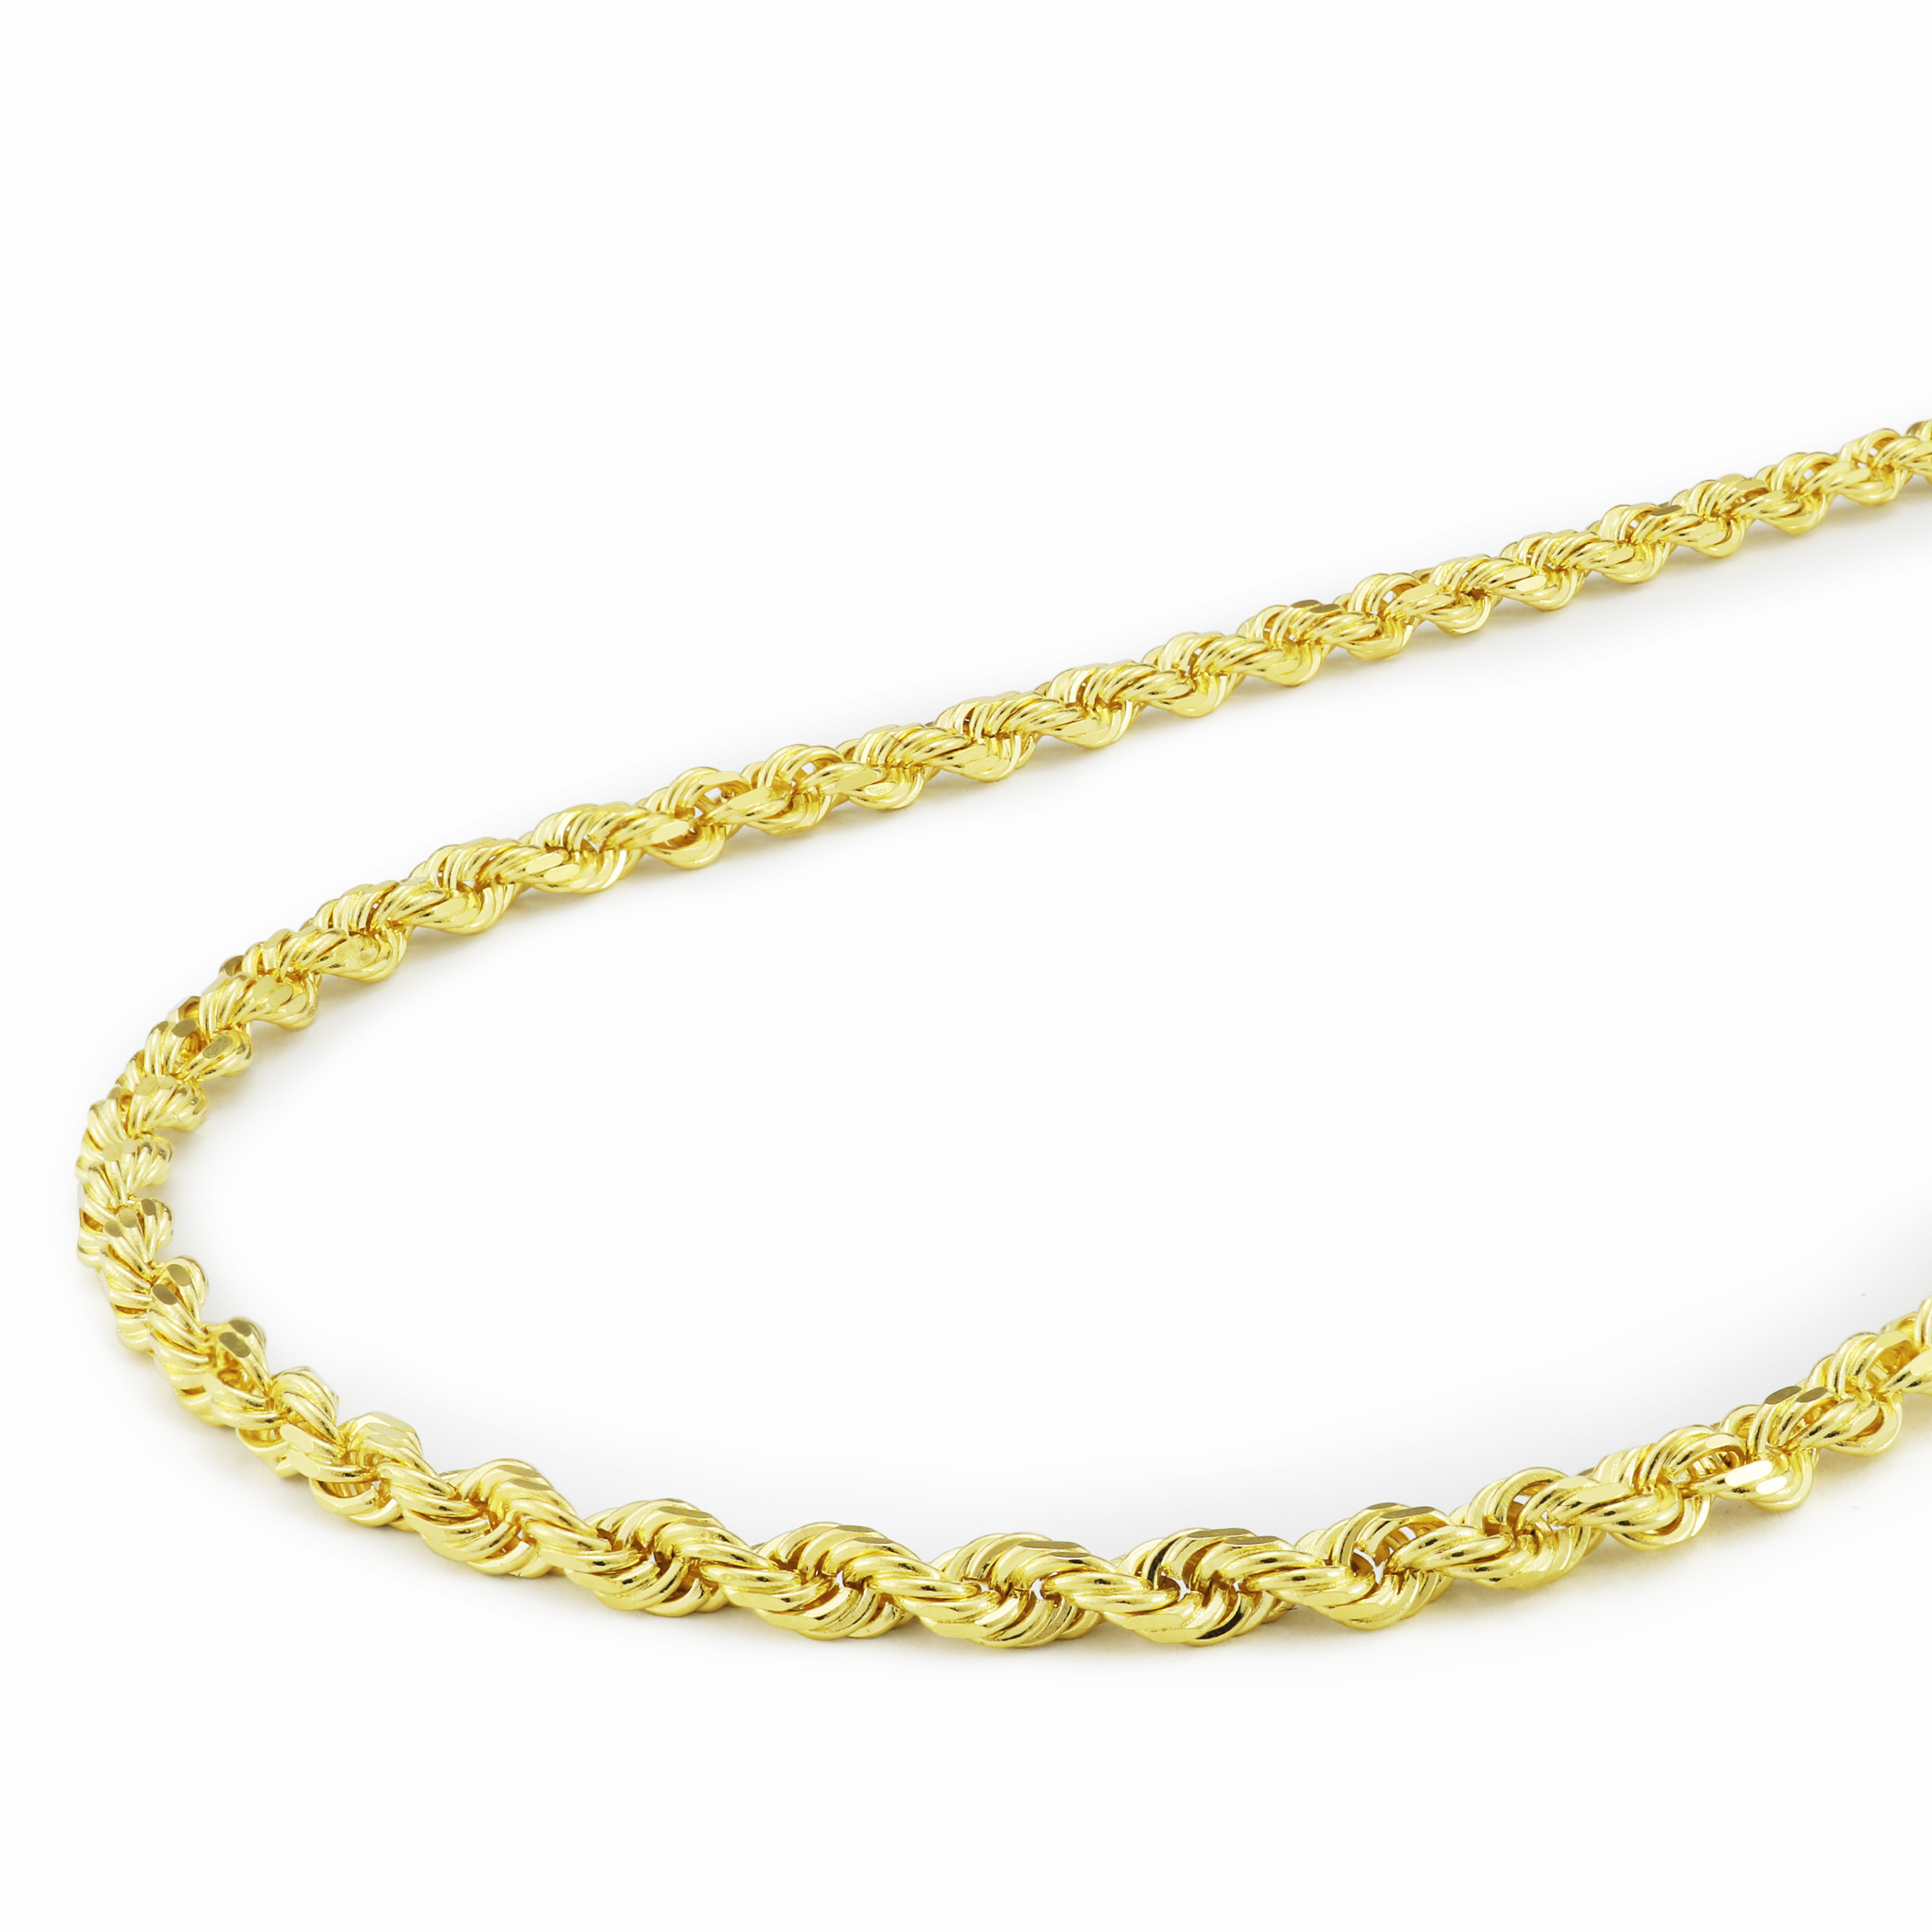 Real-14K-Yellow-Gold-3mm-Diamond-Cut-Rope-Chain-Necklace-Lobster-Clasp-18-034-30-034 thumbnail 96